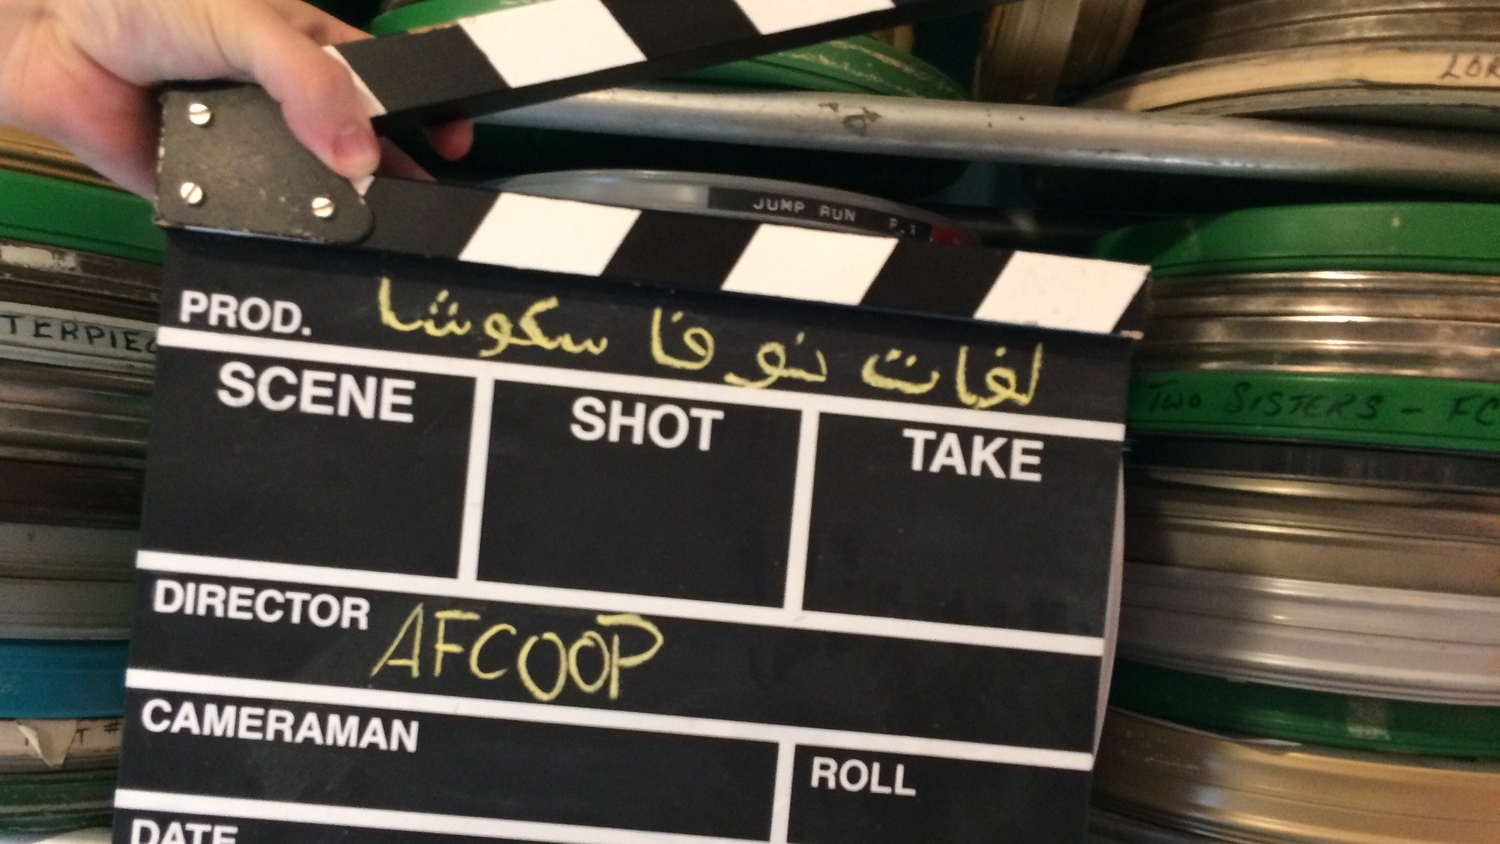 AFCOOP's Languages of Nova Scotia project shines a light on language diversity through filmmaking.